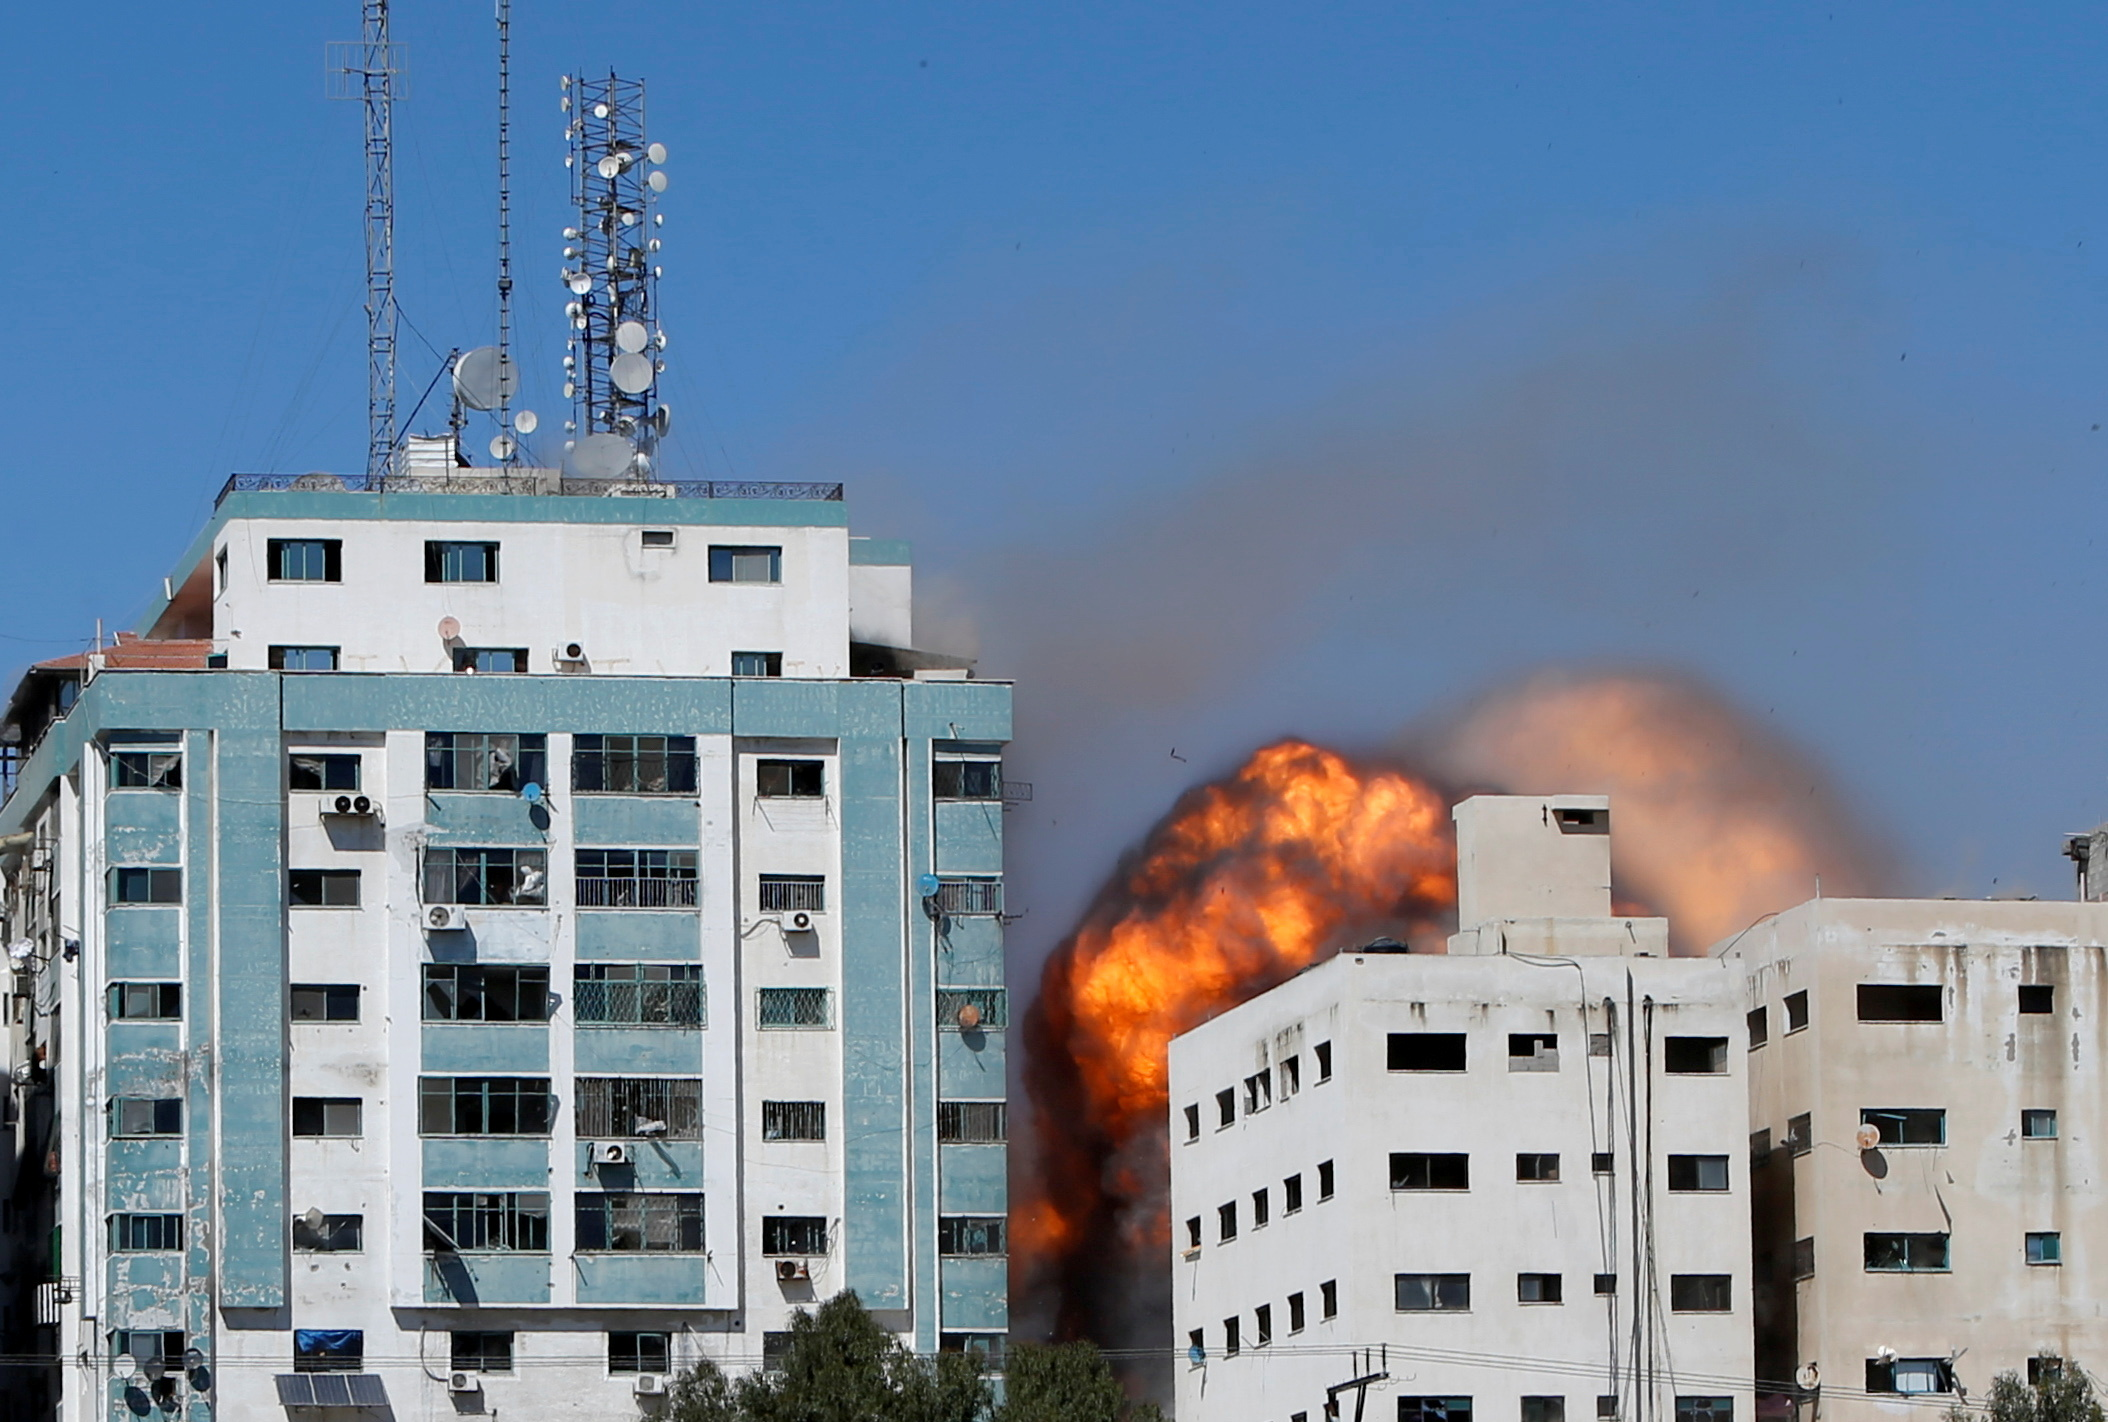 A tower housing AP, Al Jazeera offices collapses after Israeli missile strikes in Gaza city, May 15, 2021. REUTERS/Mohammed Salem